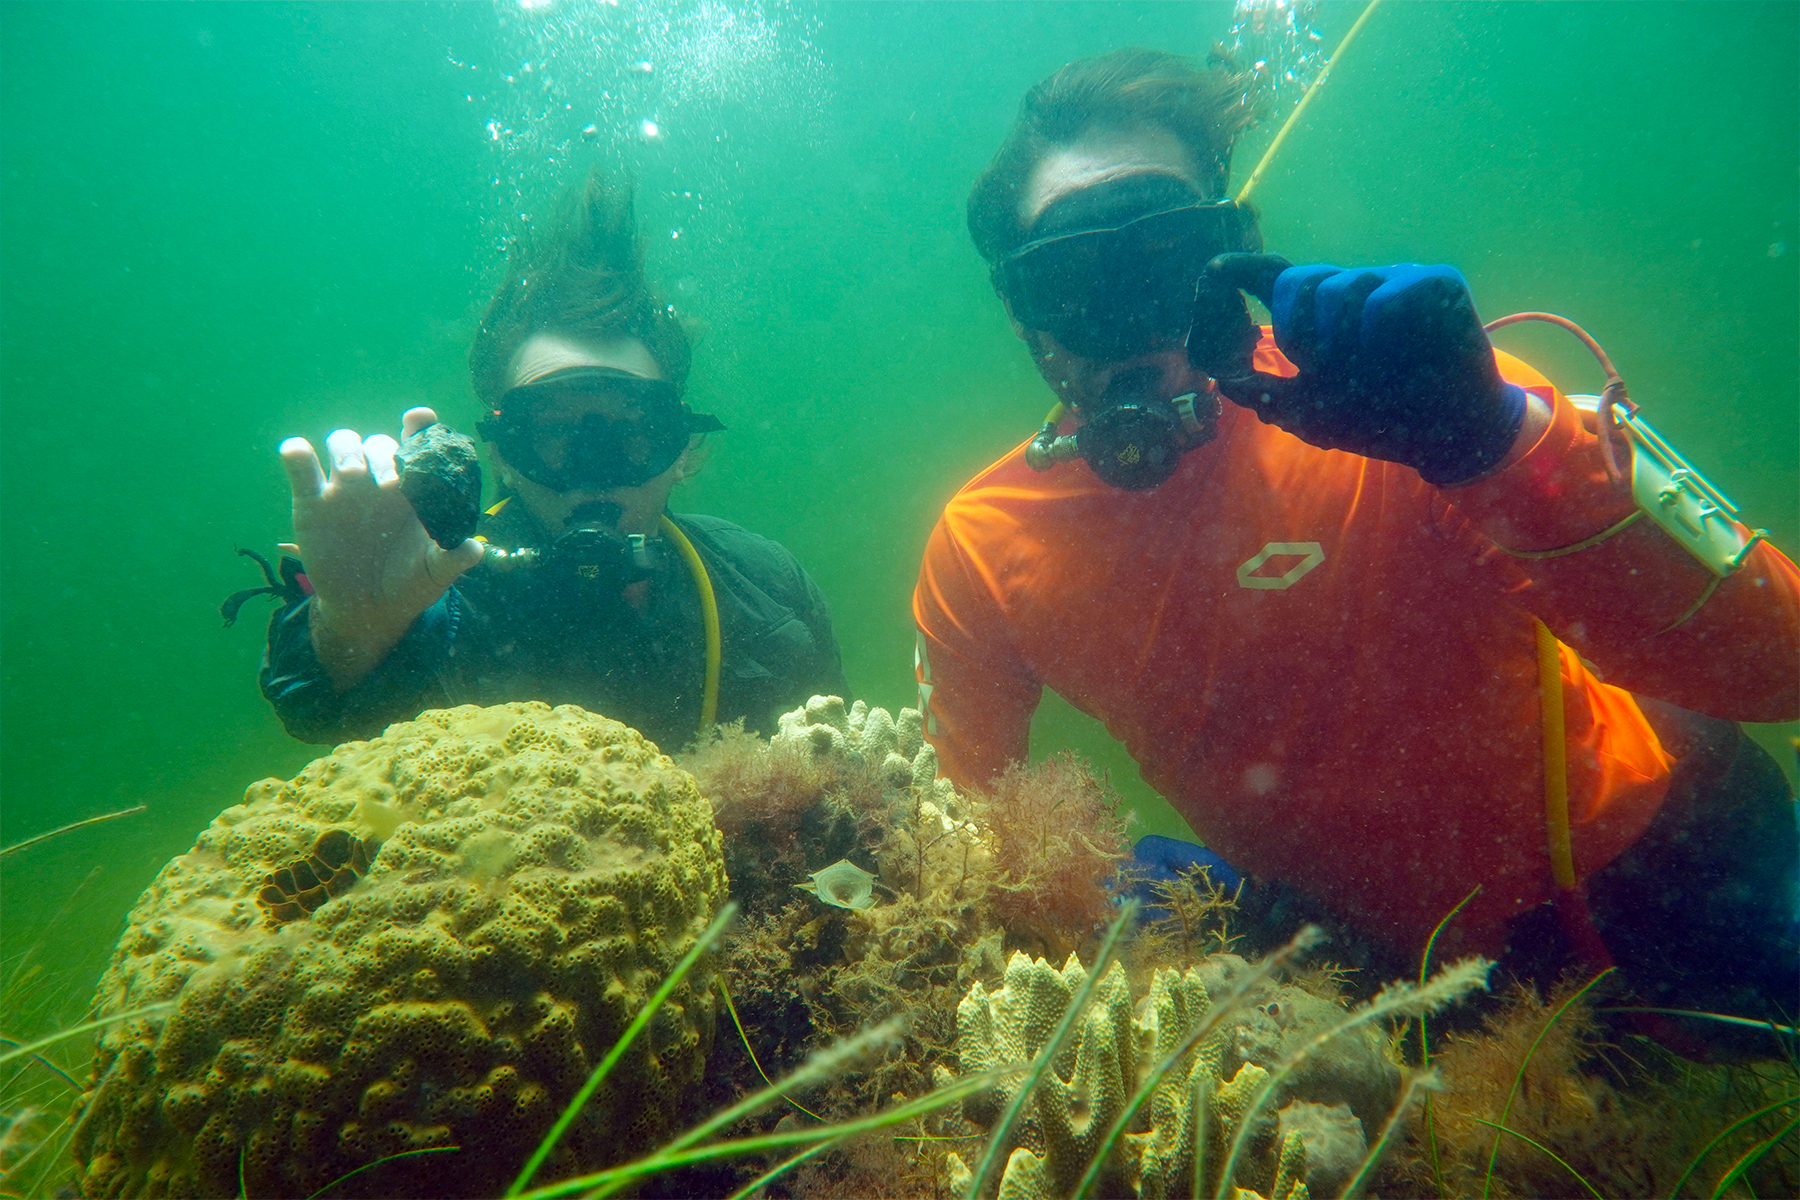 Underwater Archaeologist Shawn Joy Recovering Artifacts From The Sea Bed in The Gulf Of Mexico.